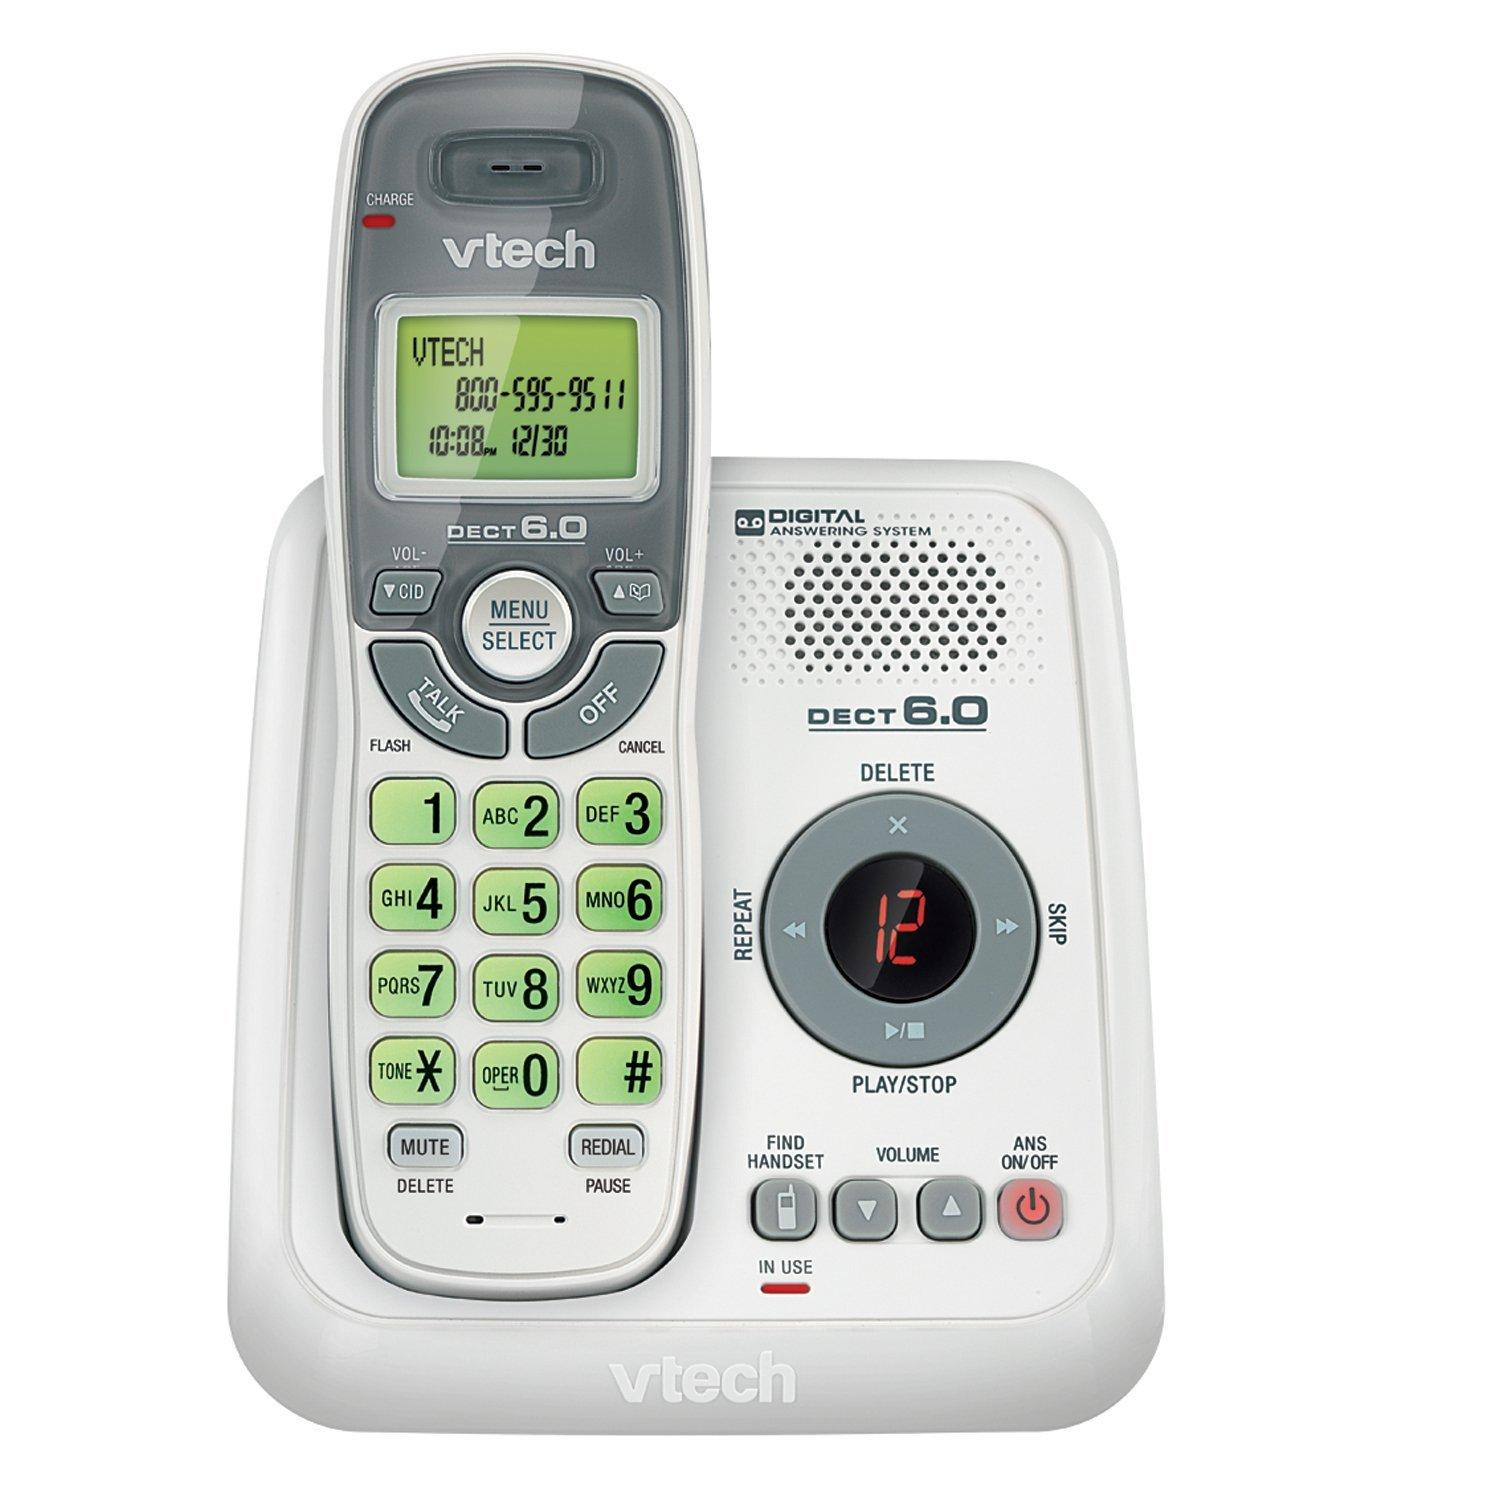 Amazoncom Vtech Cs6124 Dect 60 Cordless Phone With Answering